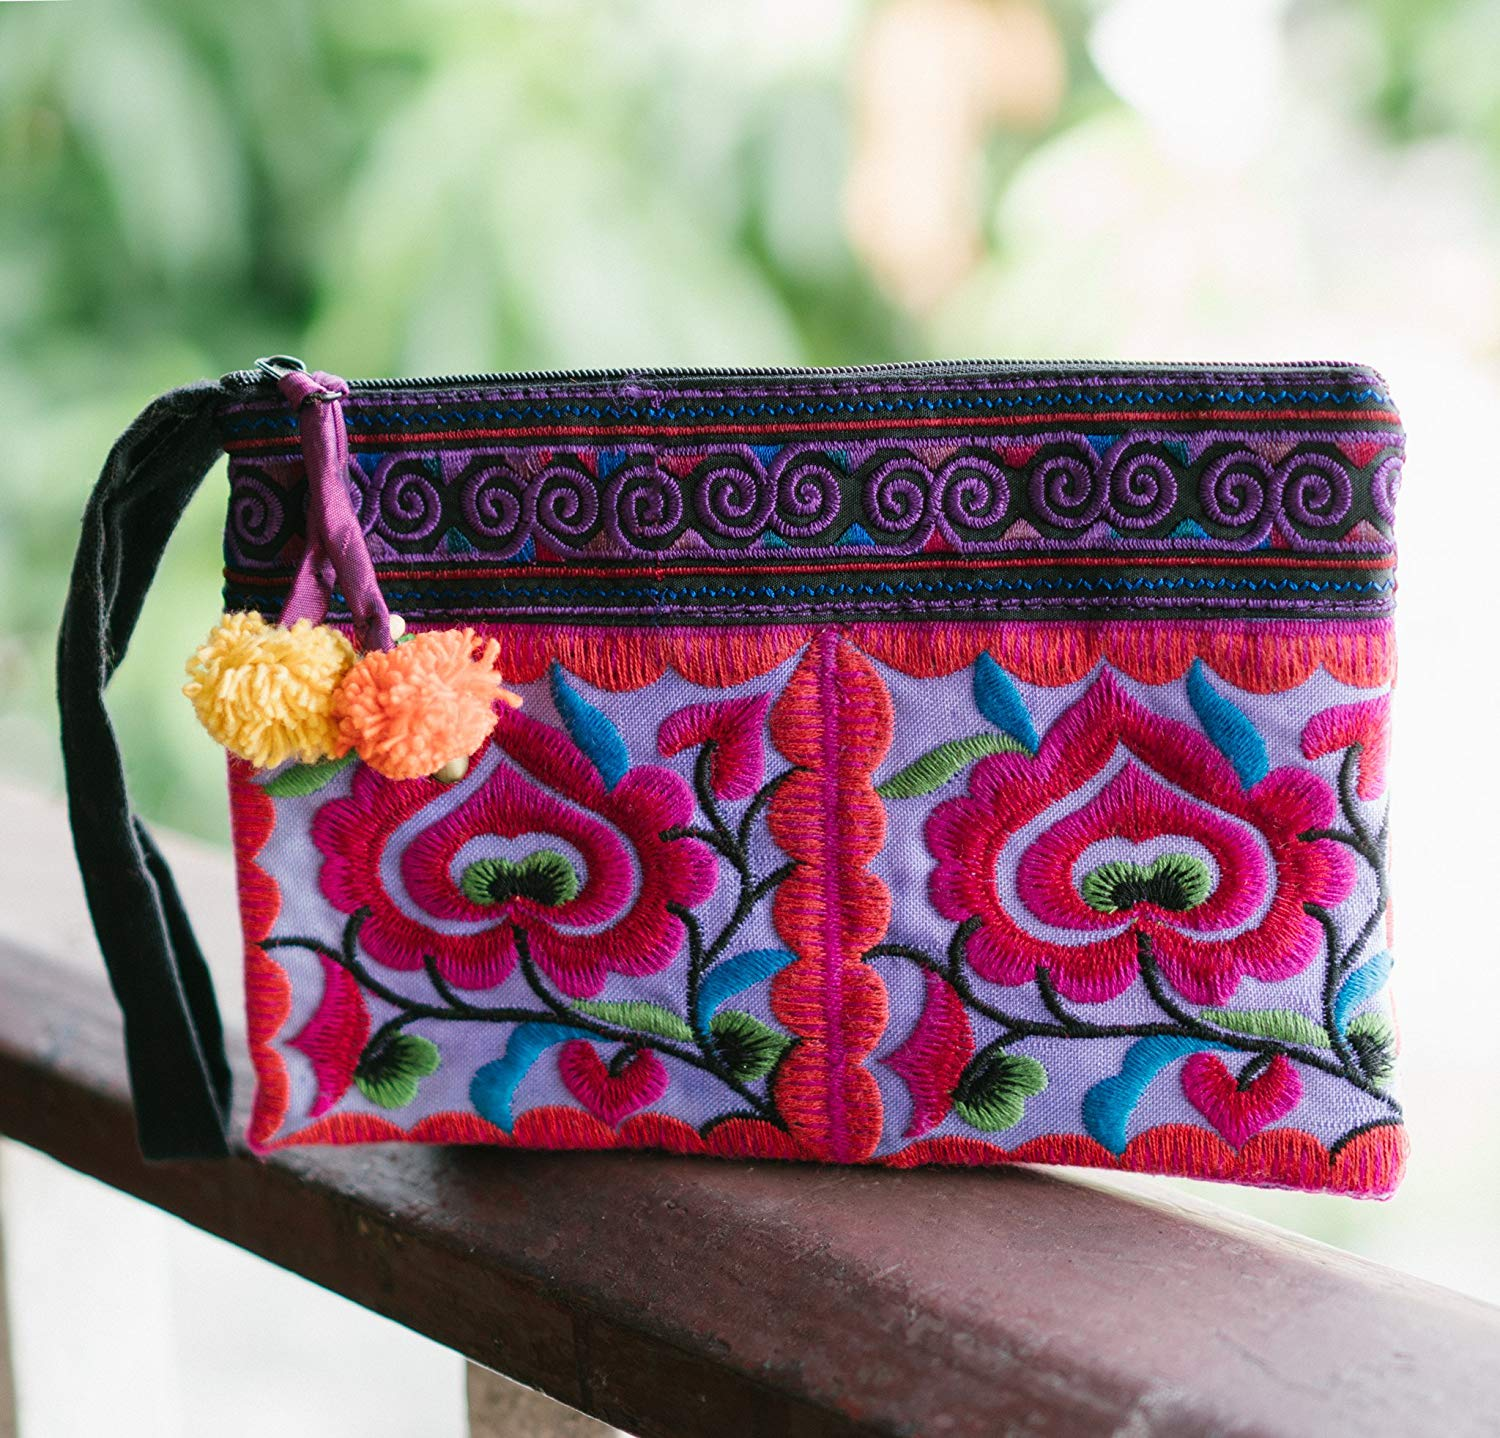 Changnoi Flower Purple Women's Purse with Hmong Hill Tribe Embroidery, Unique Thai Clutch, Ethnic Handbag with Pom Pom, Gift for Her